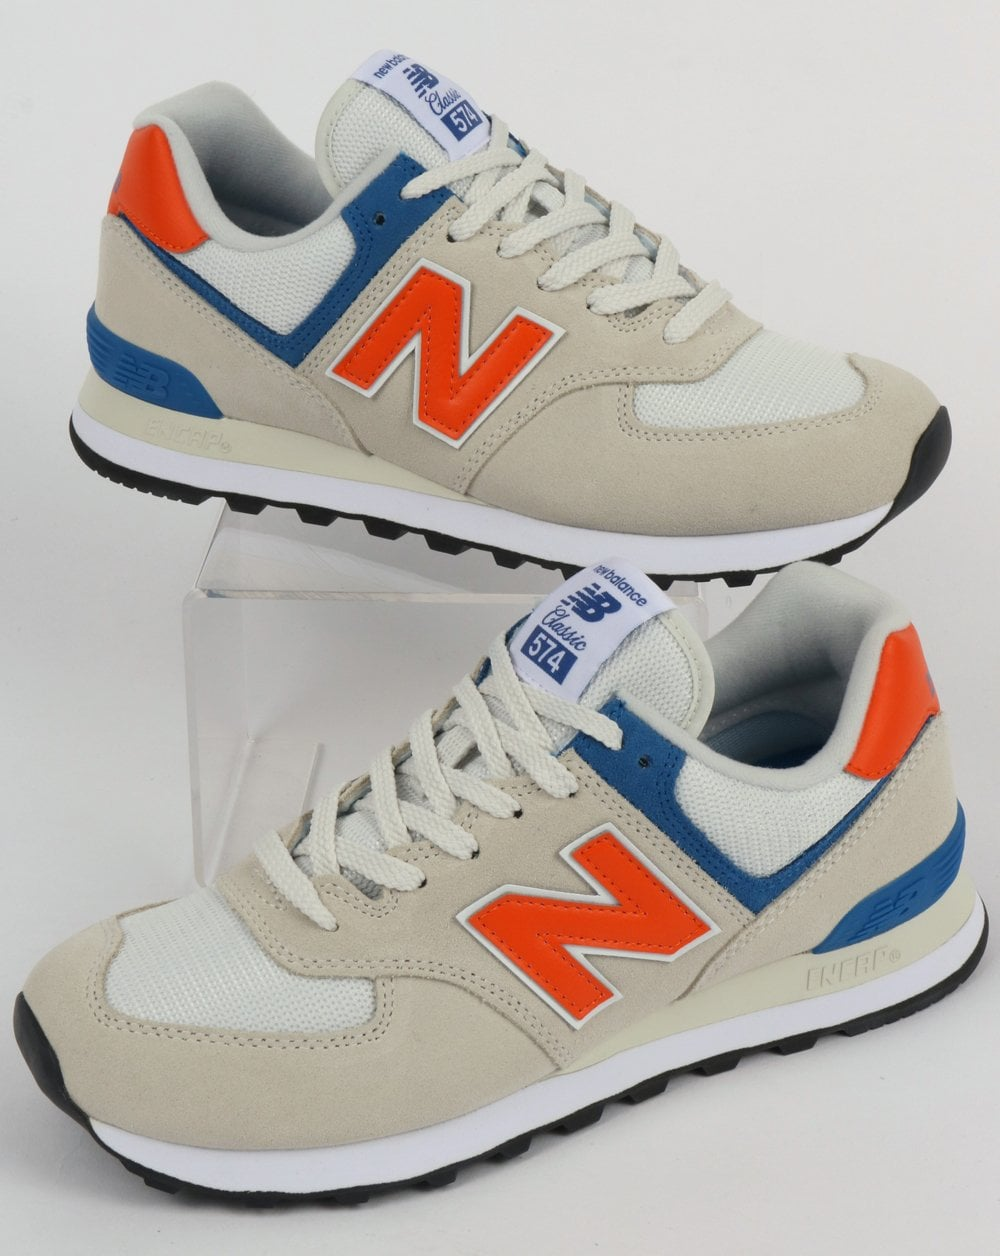 hot sale online c7123 cc61f New Balance 574 Trainers White/Orange